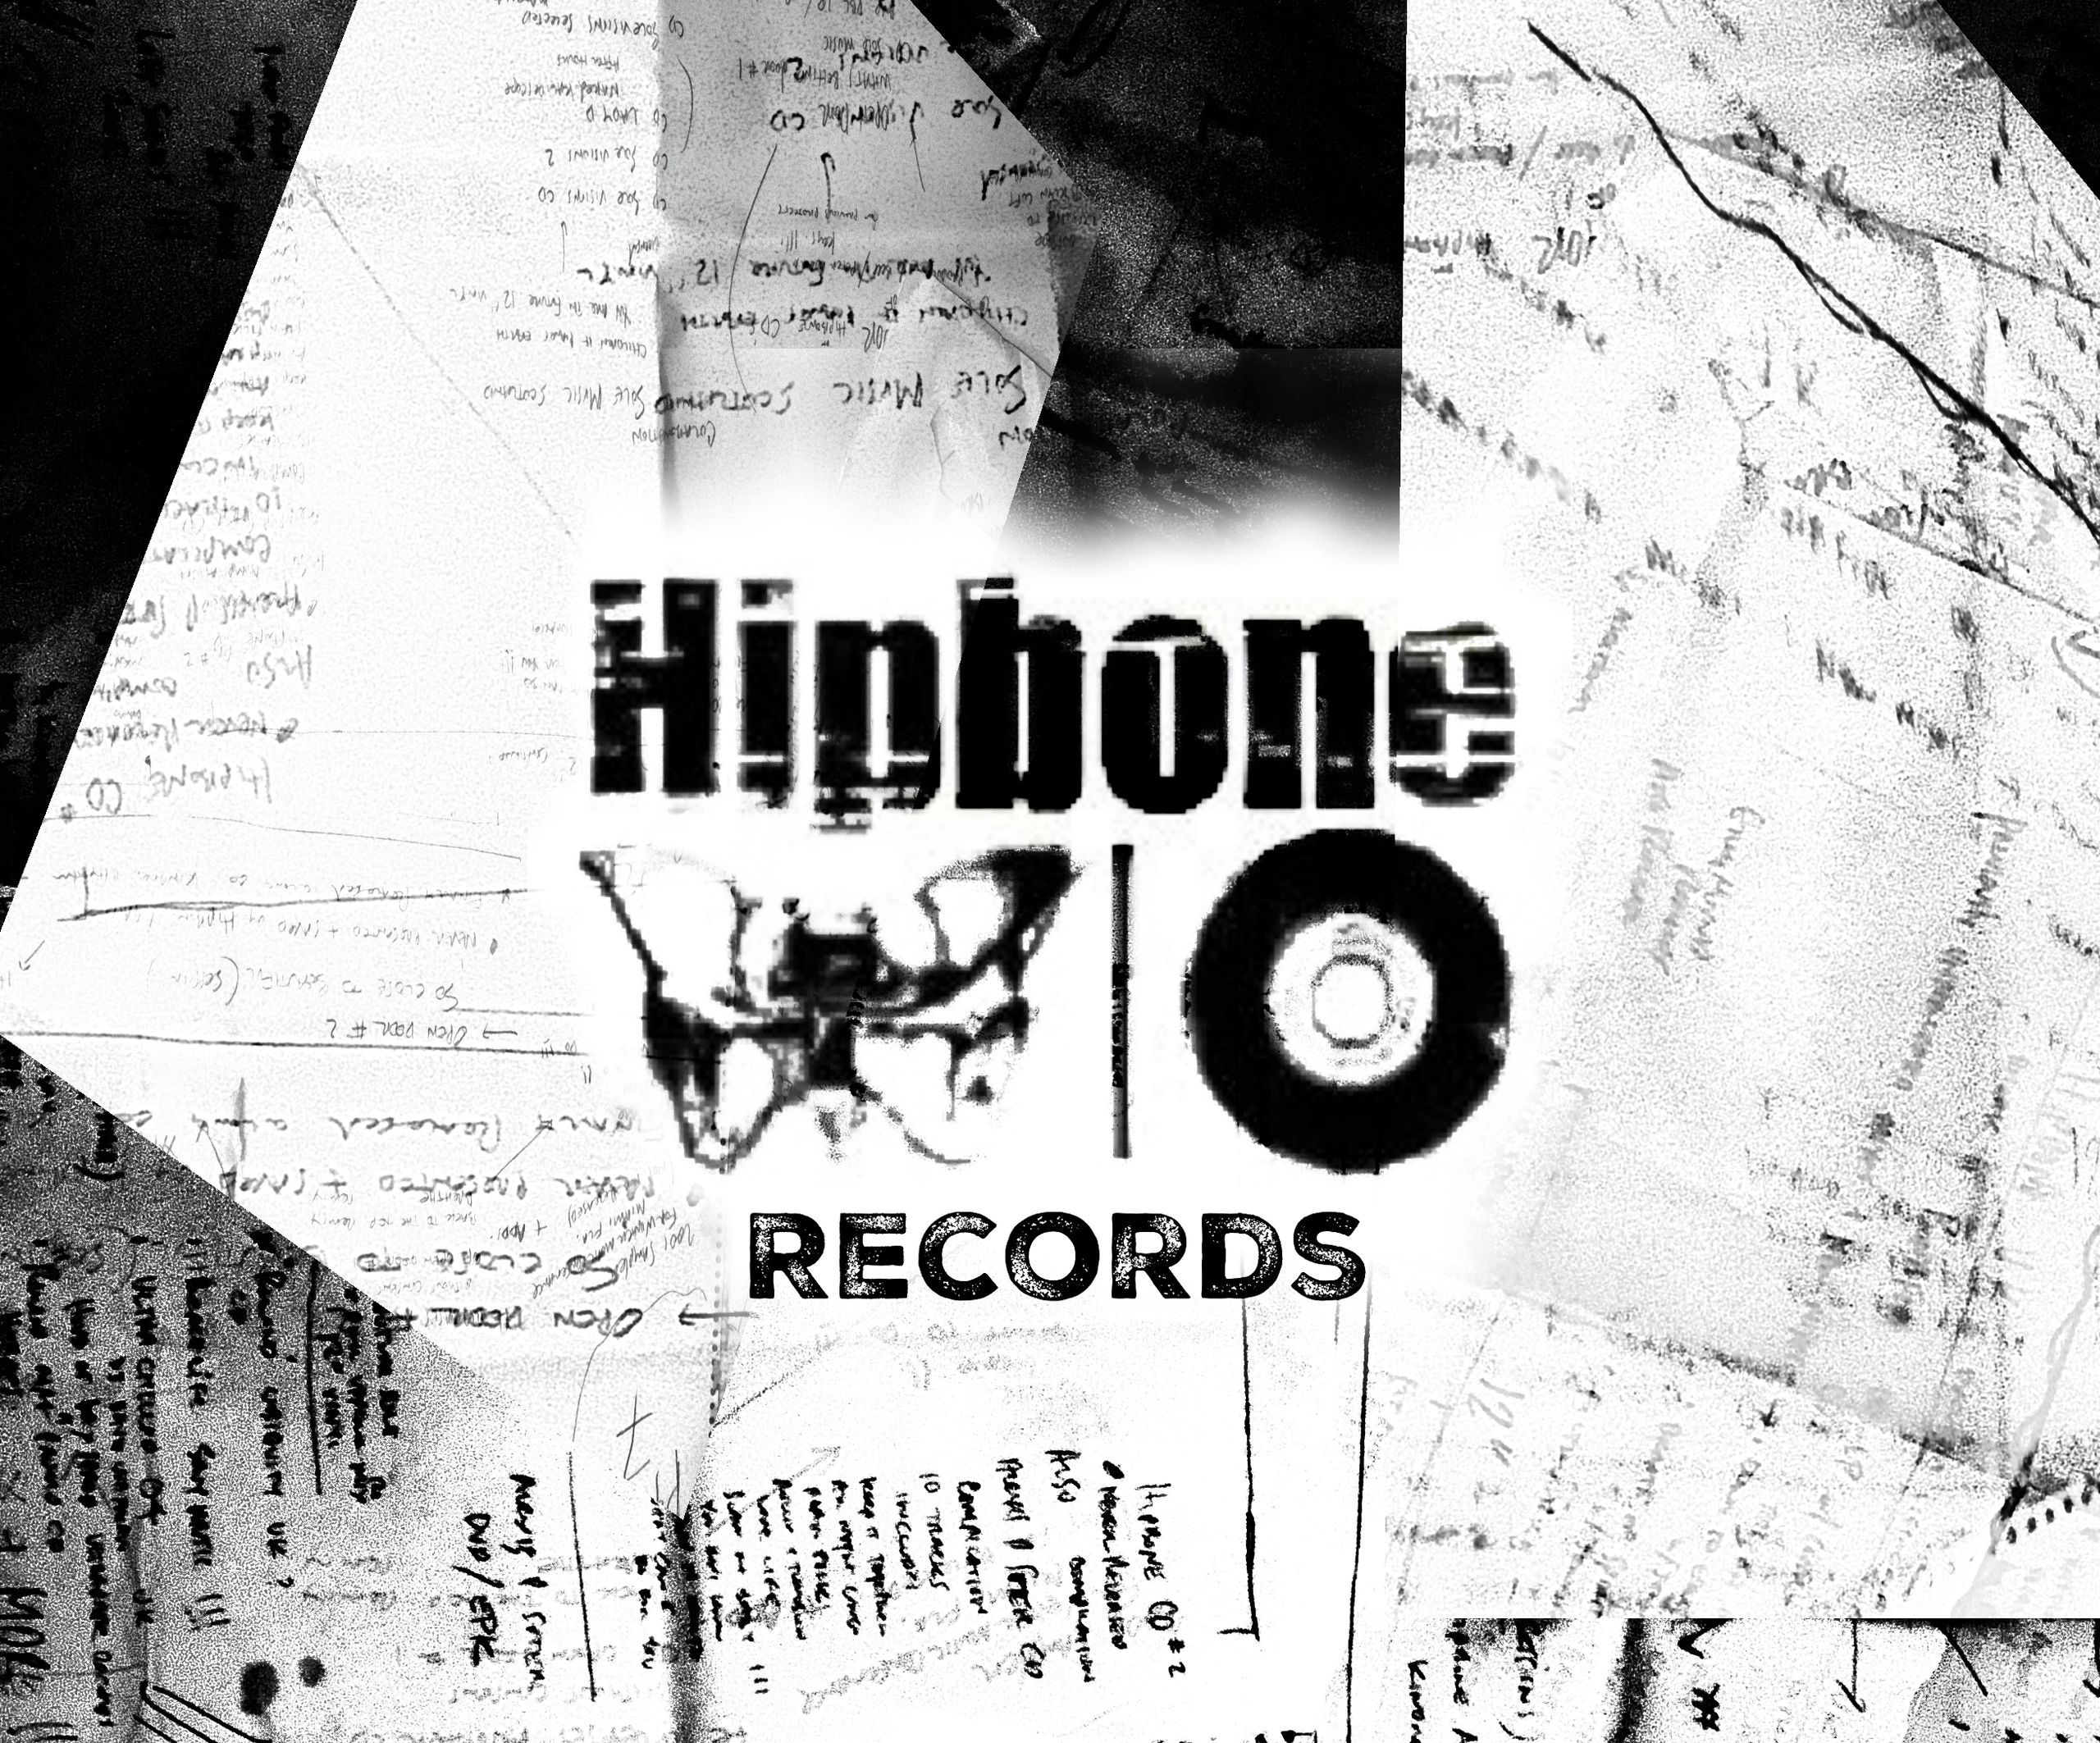 Hipbone Records home page.